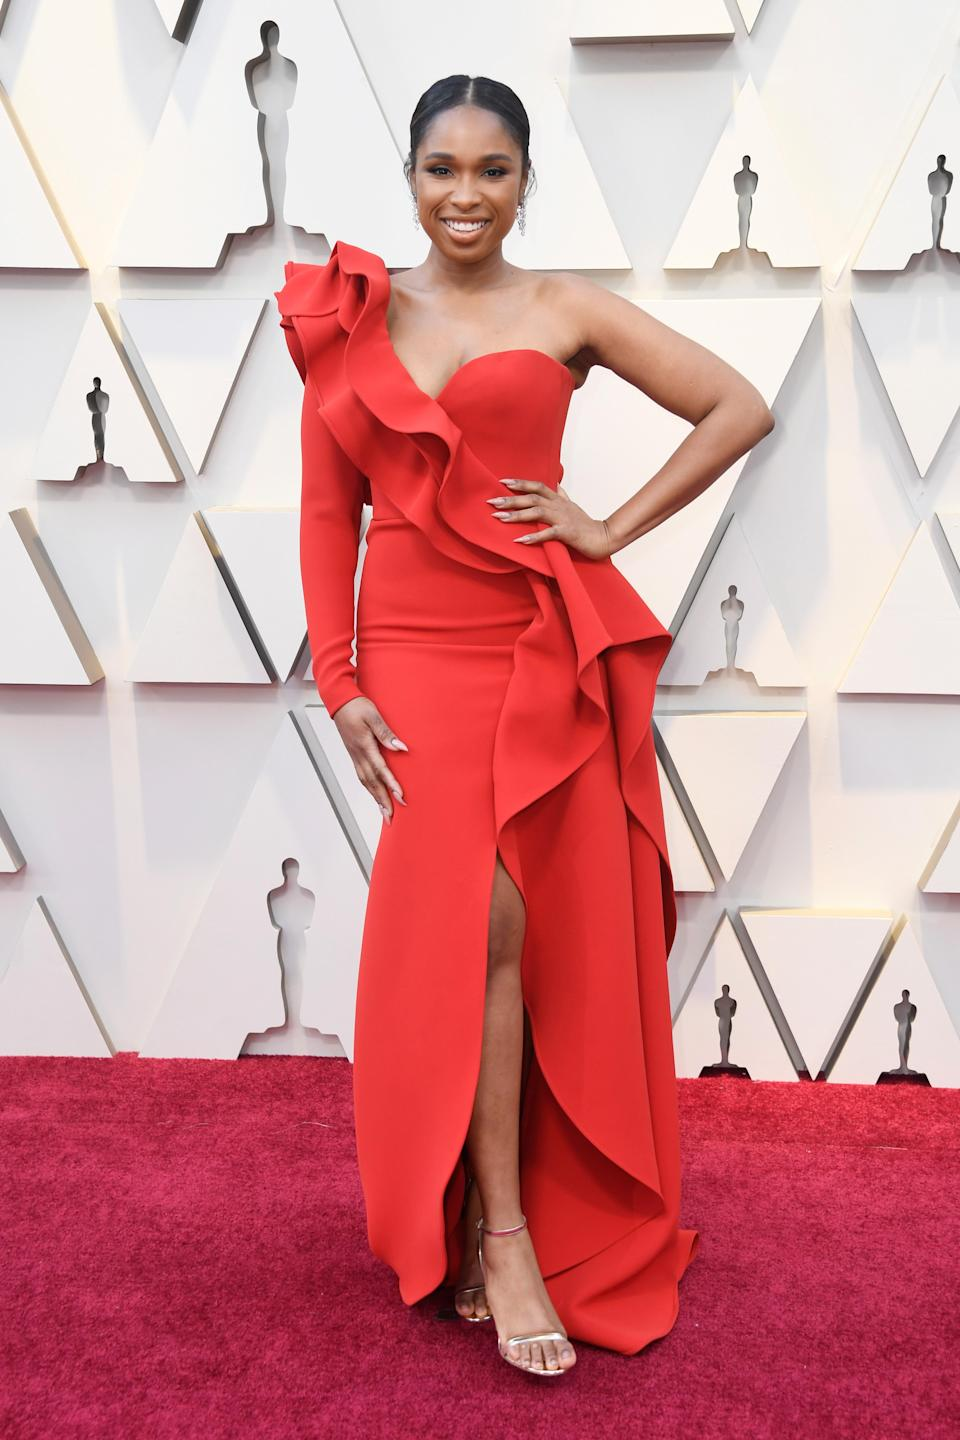 <p>The Oscar winner and performer at this year's ceremony wowed in a red one-shoulder gown by Elie Saab. (Image via Getty Images) </p>